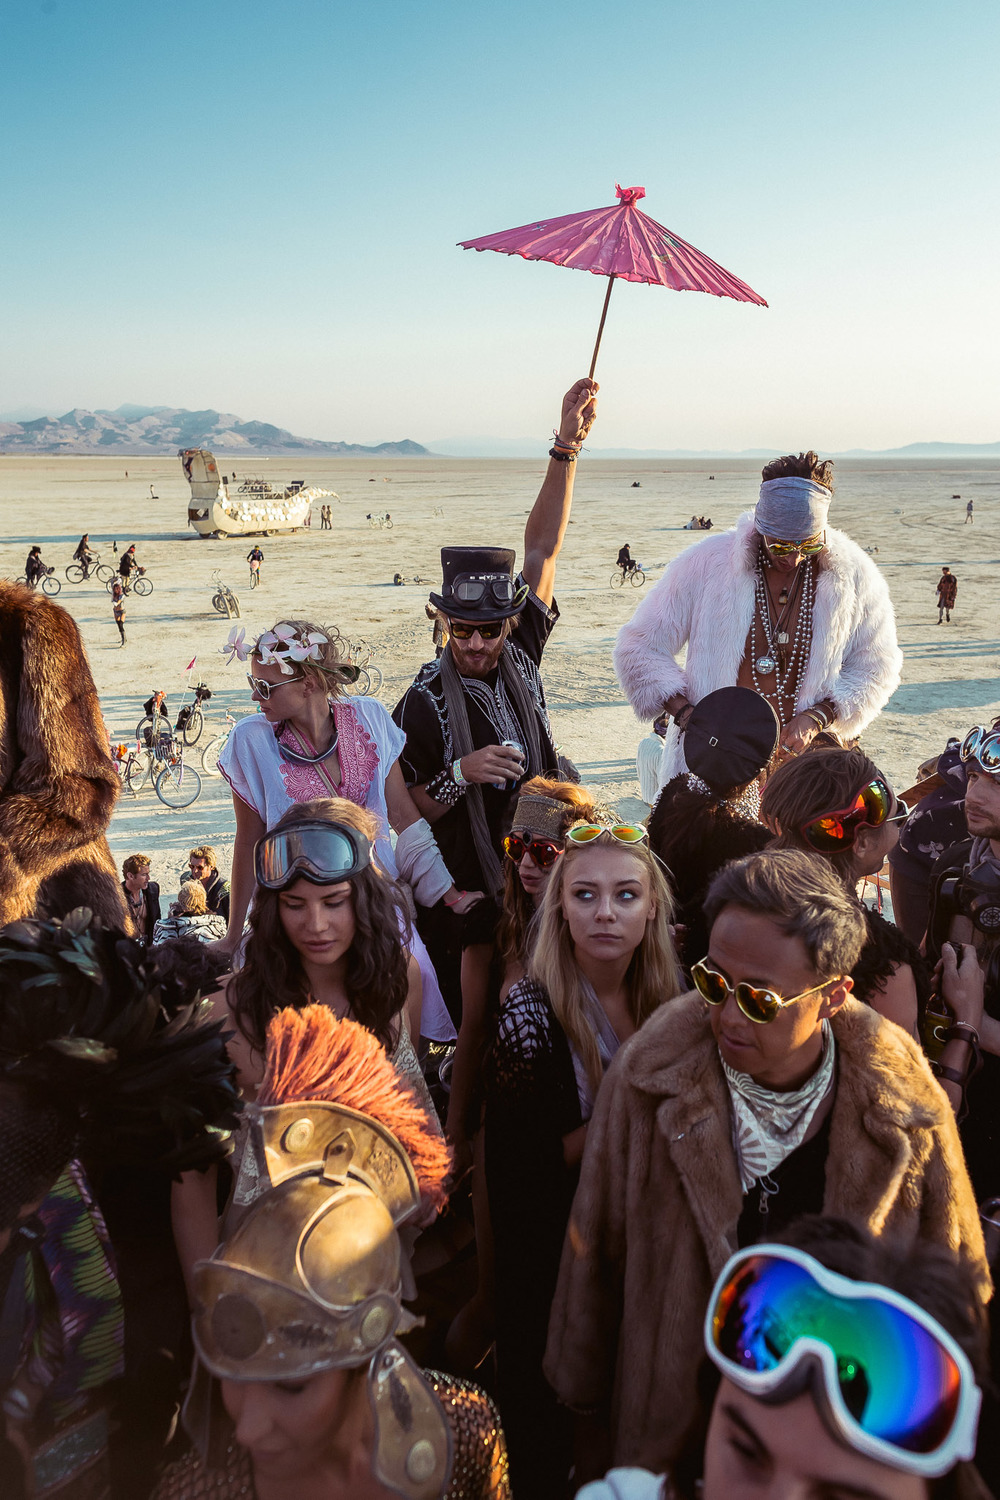 Burning_Man_2014_by_Cai_Griffin-124.jpg